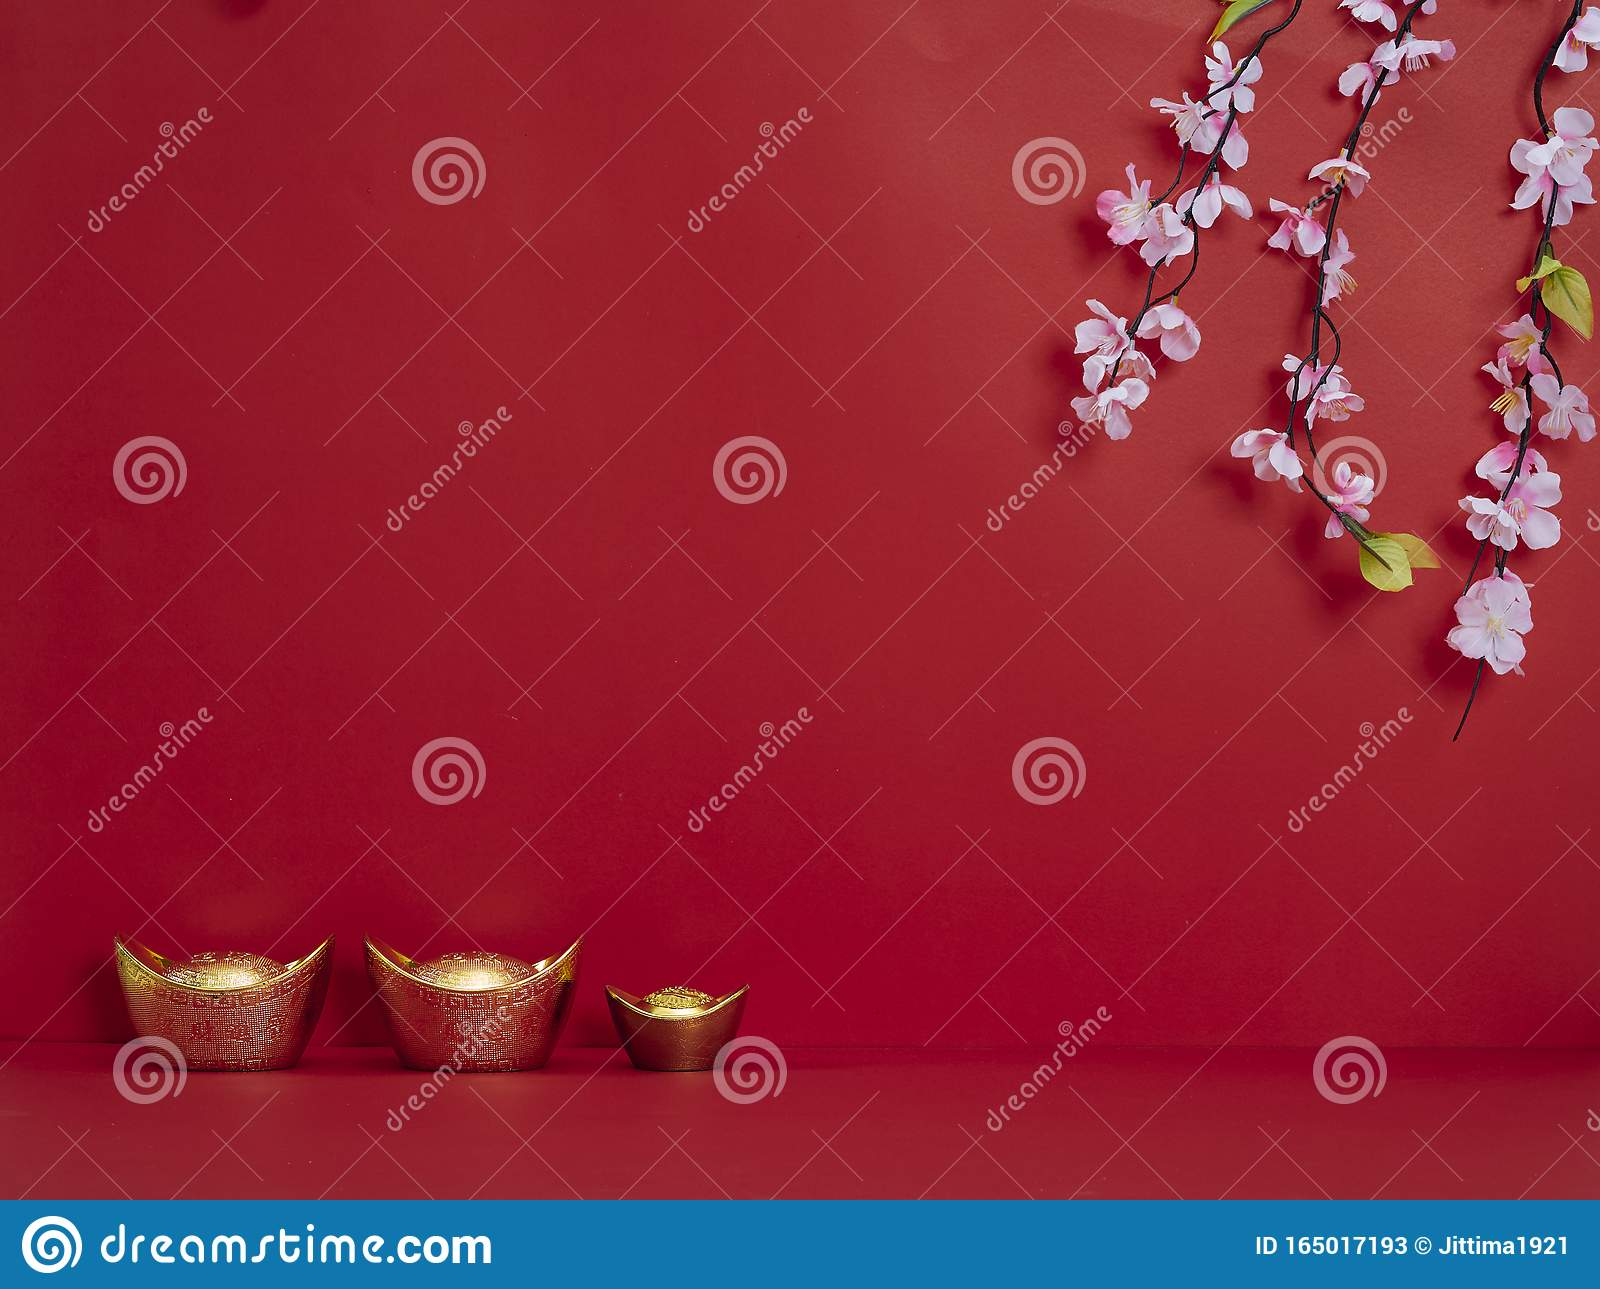 Chinese New Year 2020. Flowers and chinese gold ingot